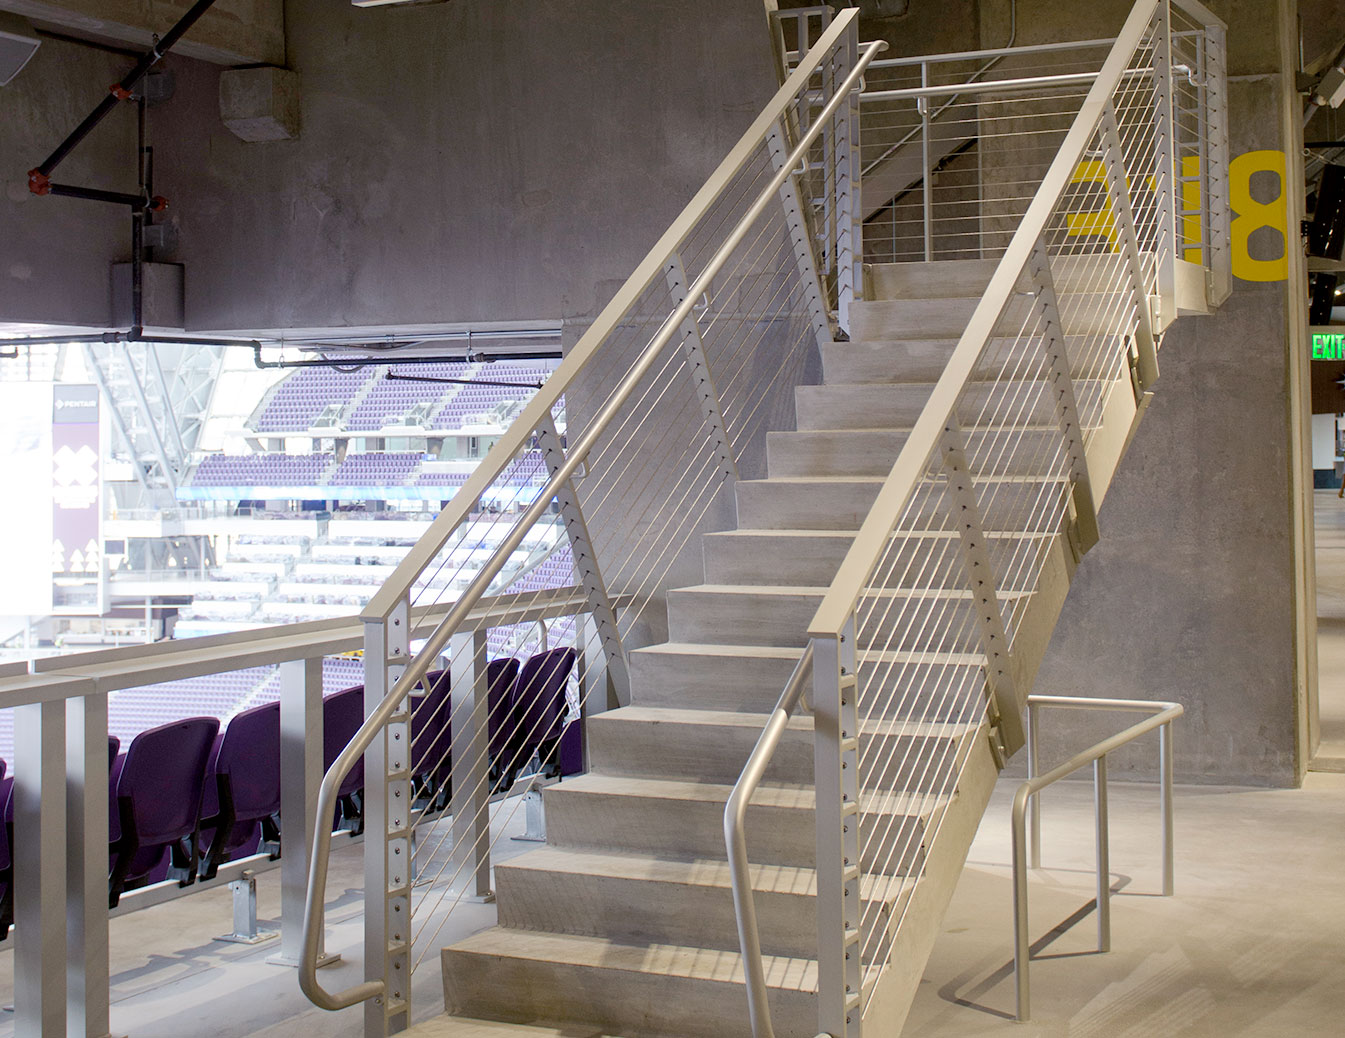 Tensiline cable railing used on fan entrance stairs from concourse areas